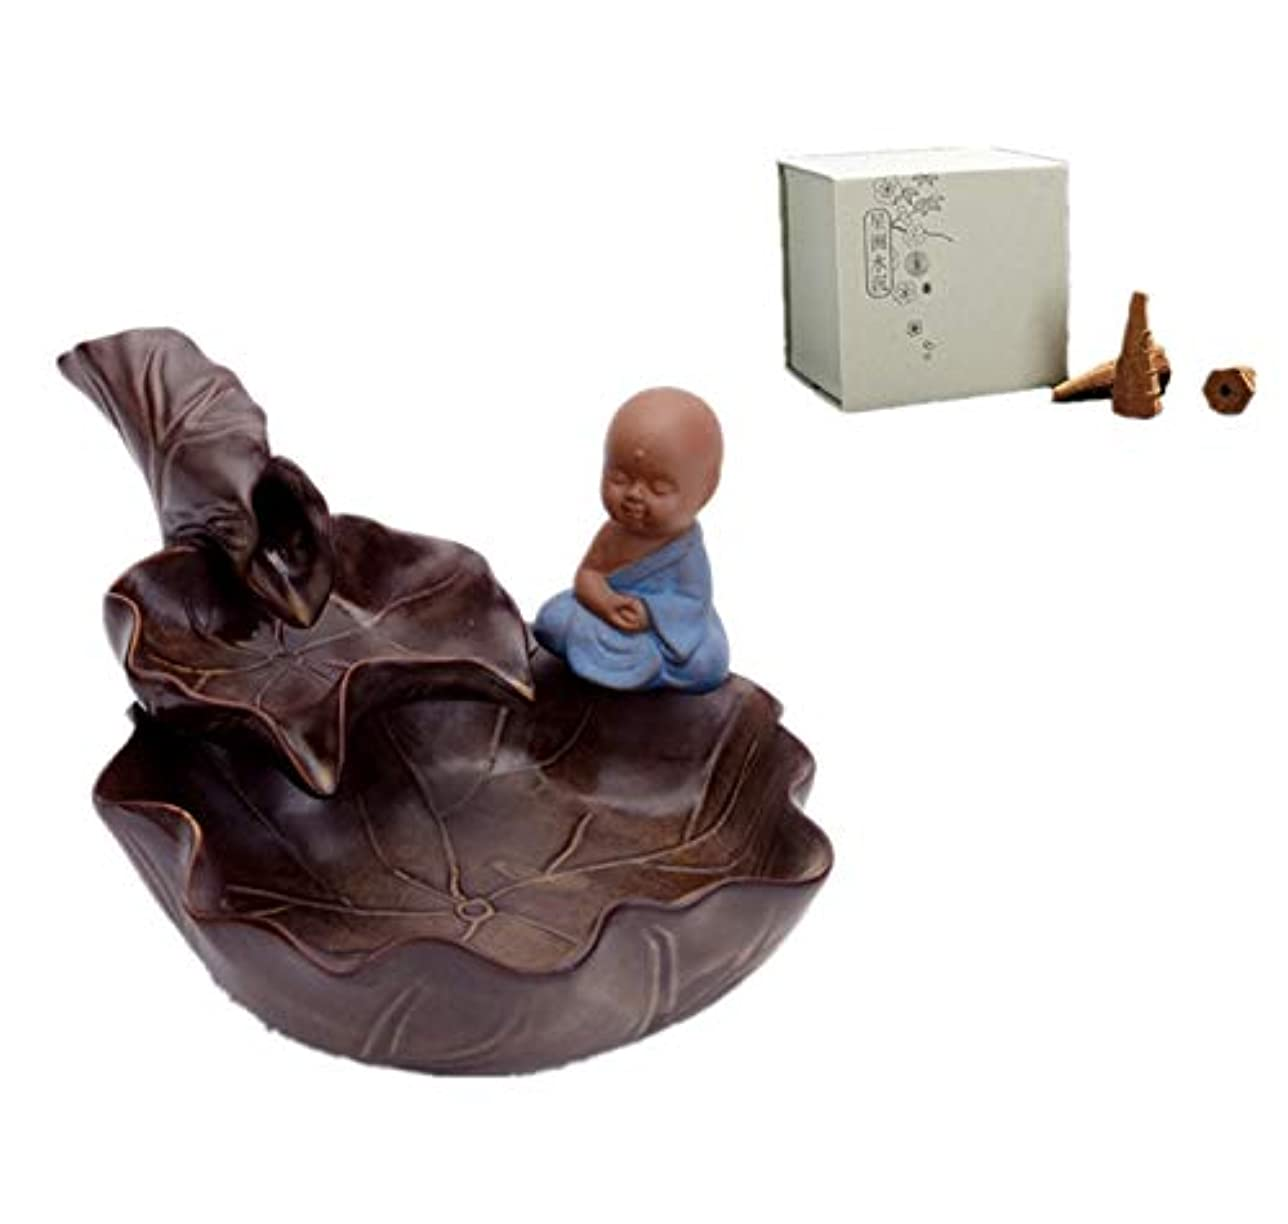 XPPXPP Reflux Incense Burner With 40 Reflux Cones, Household Ceramic Reflux Cone-Shaped Candlestick Burner